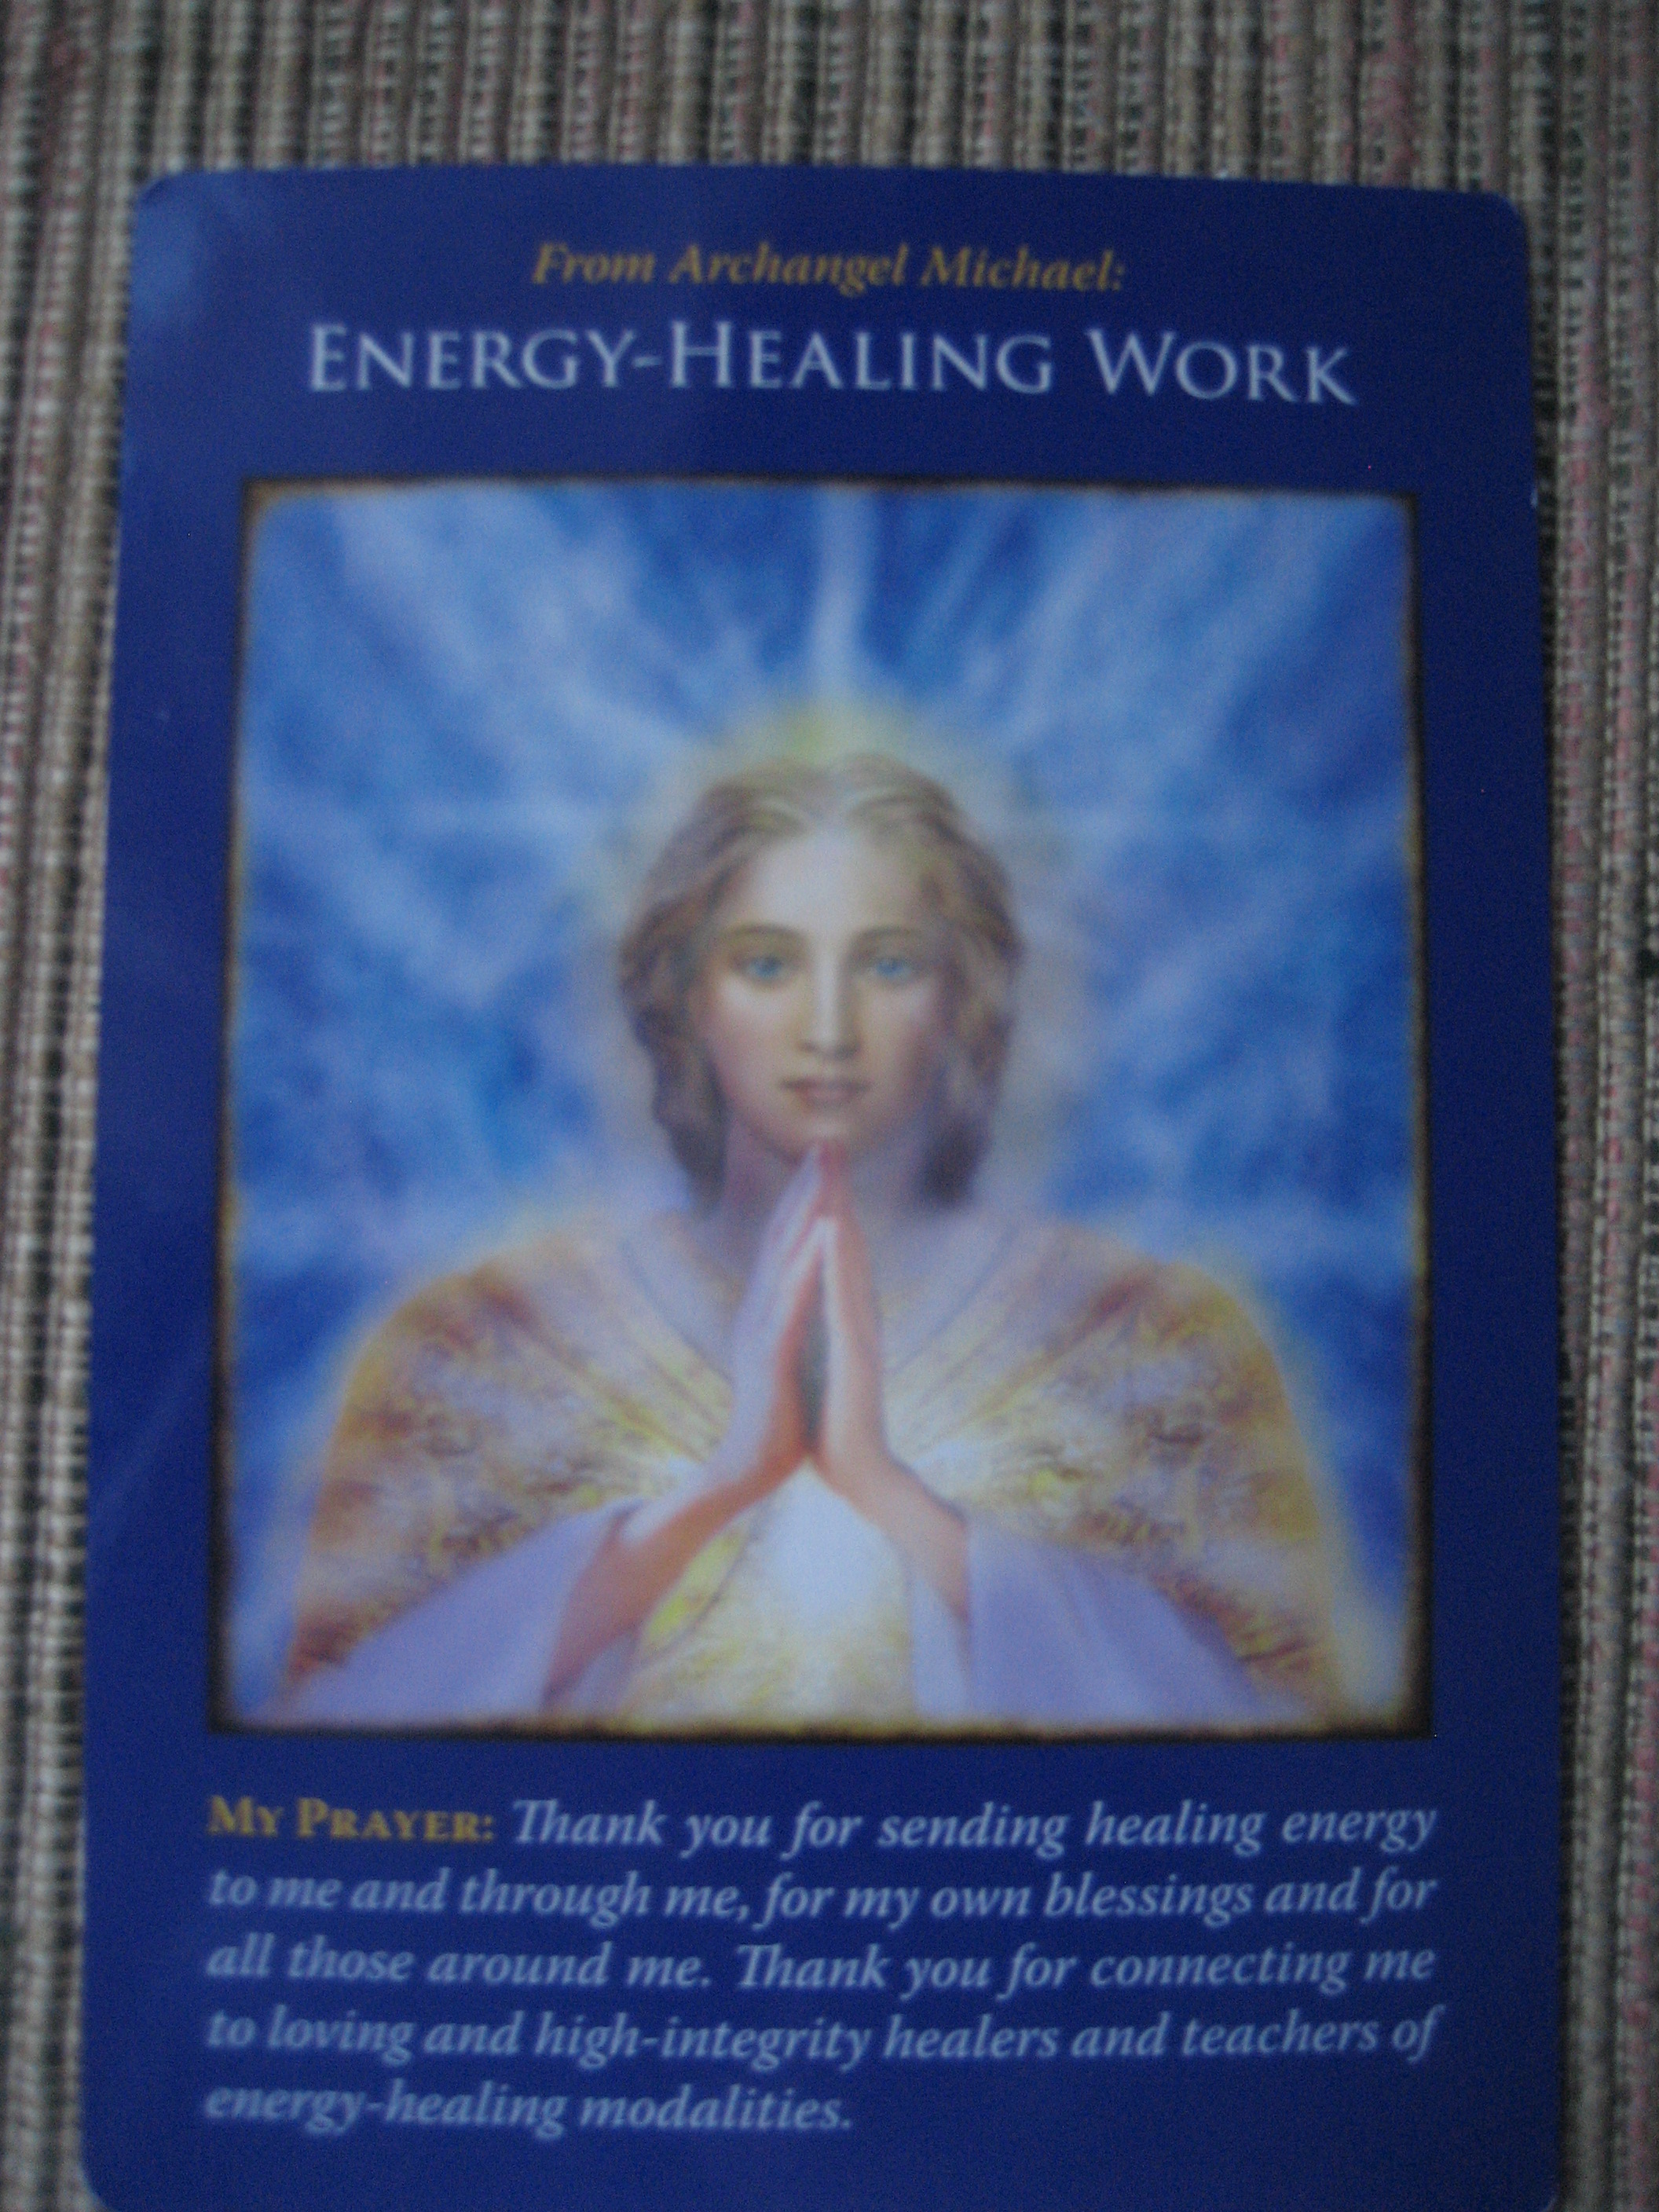 Archangel Michael Message for the Day